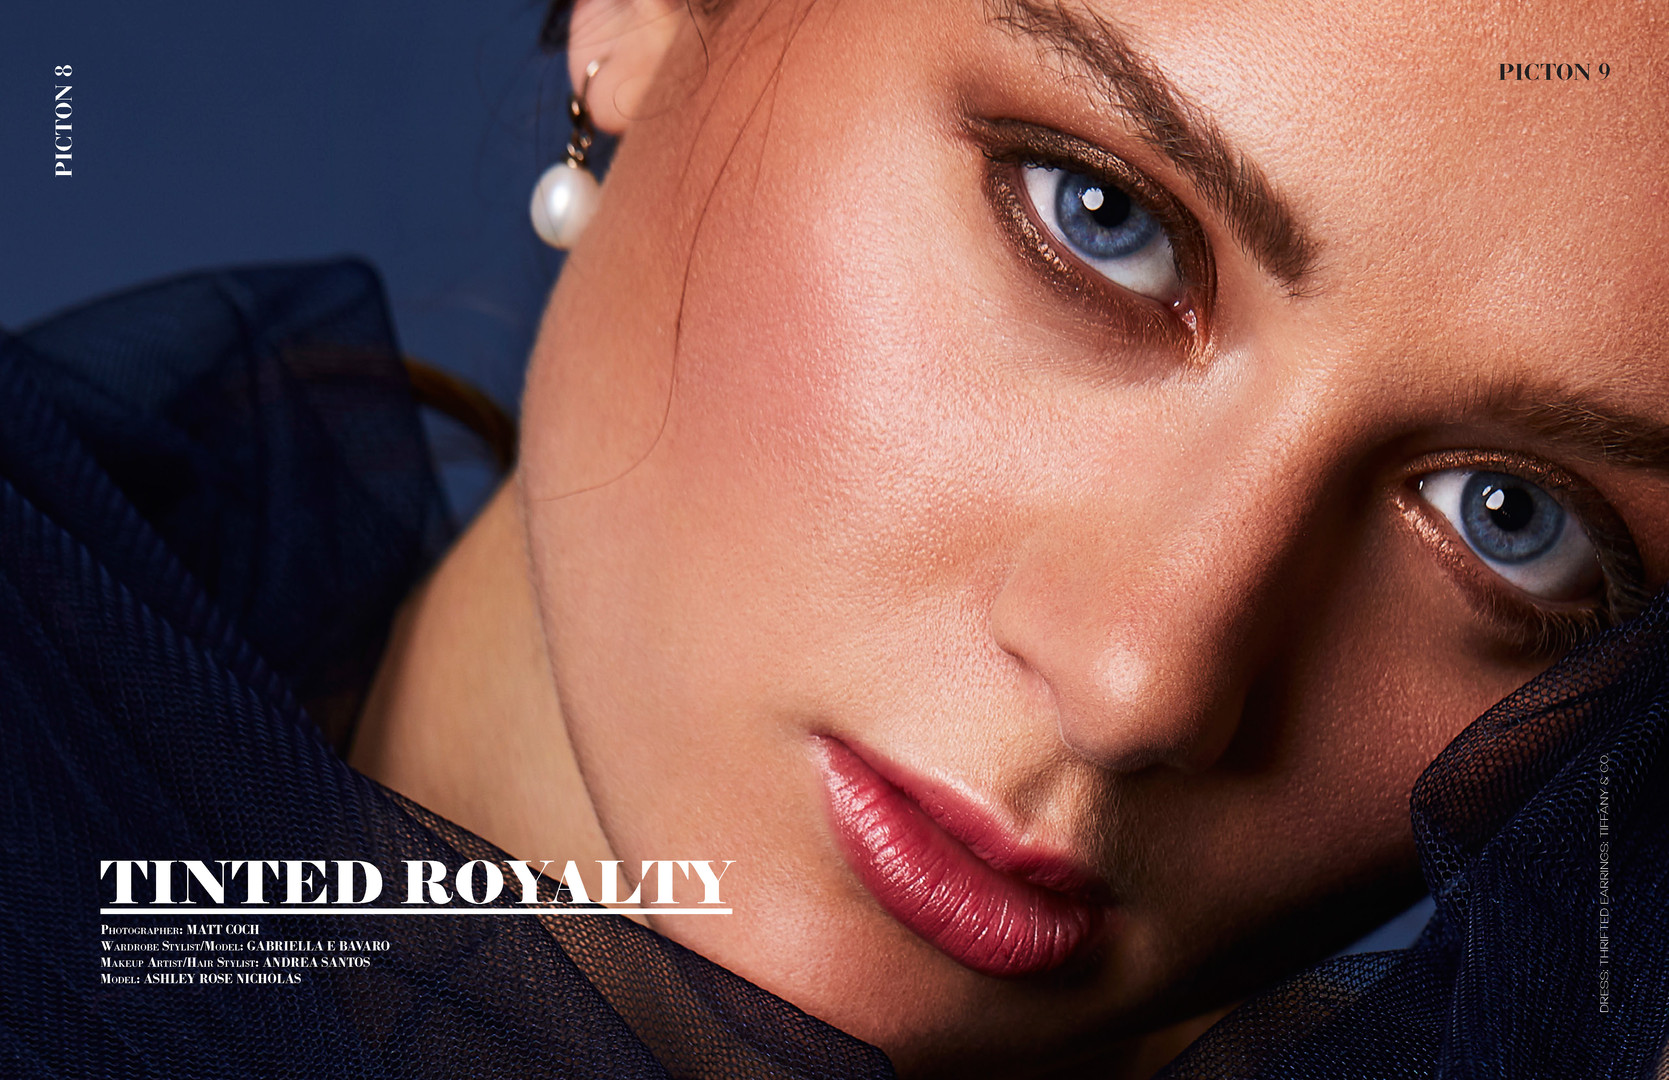 """Picton Magazine: Special Beauty Edition October 2019 Issue No. 301, pgs. 8-13 """"Tinted Royalty"""" by Matt Coch"""